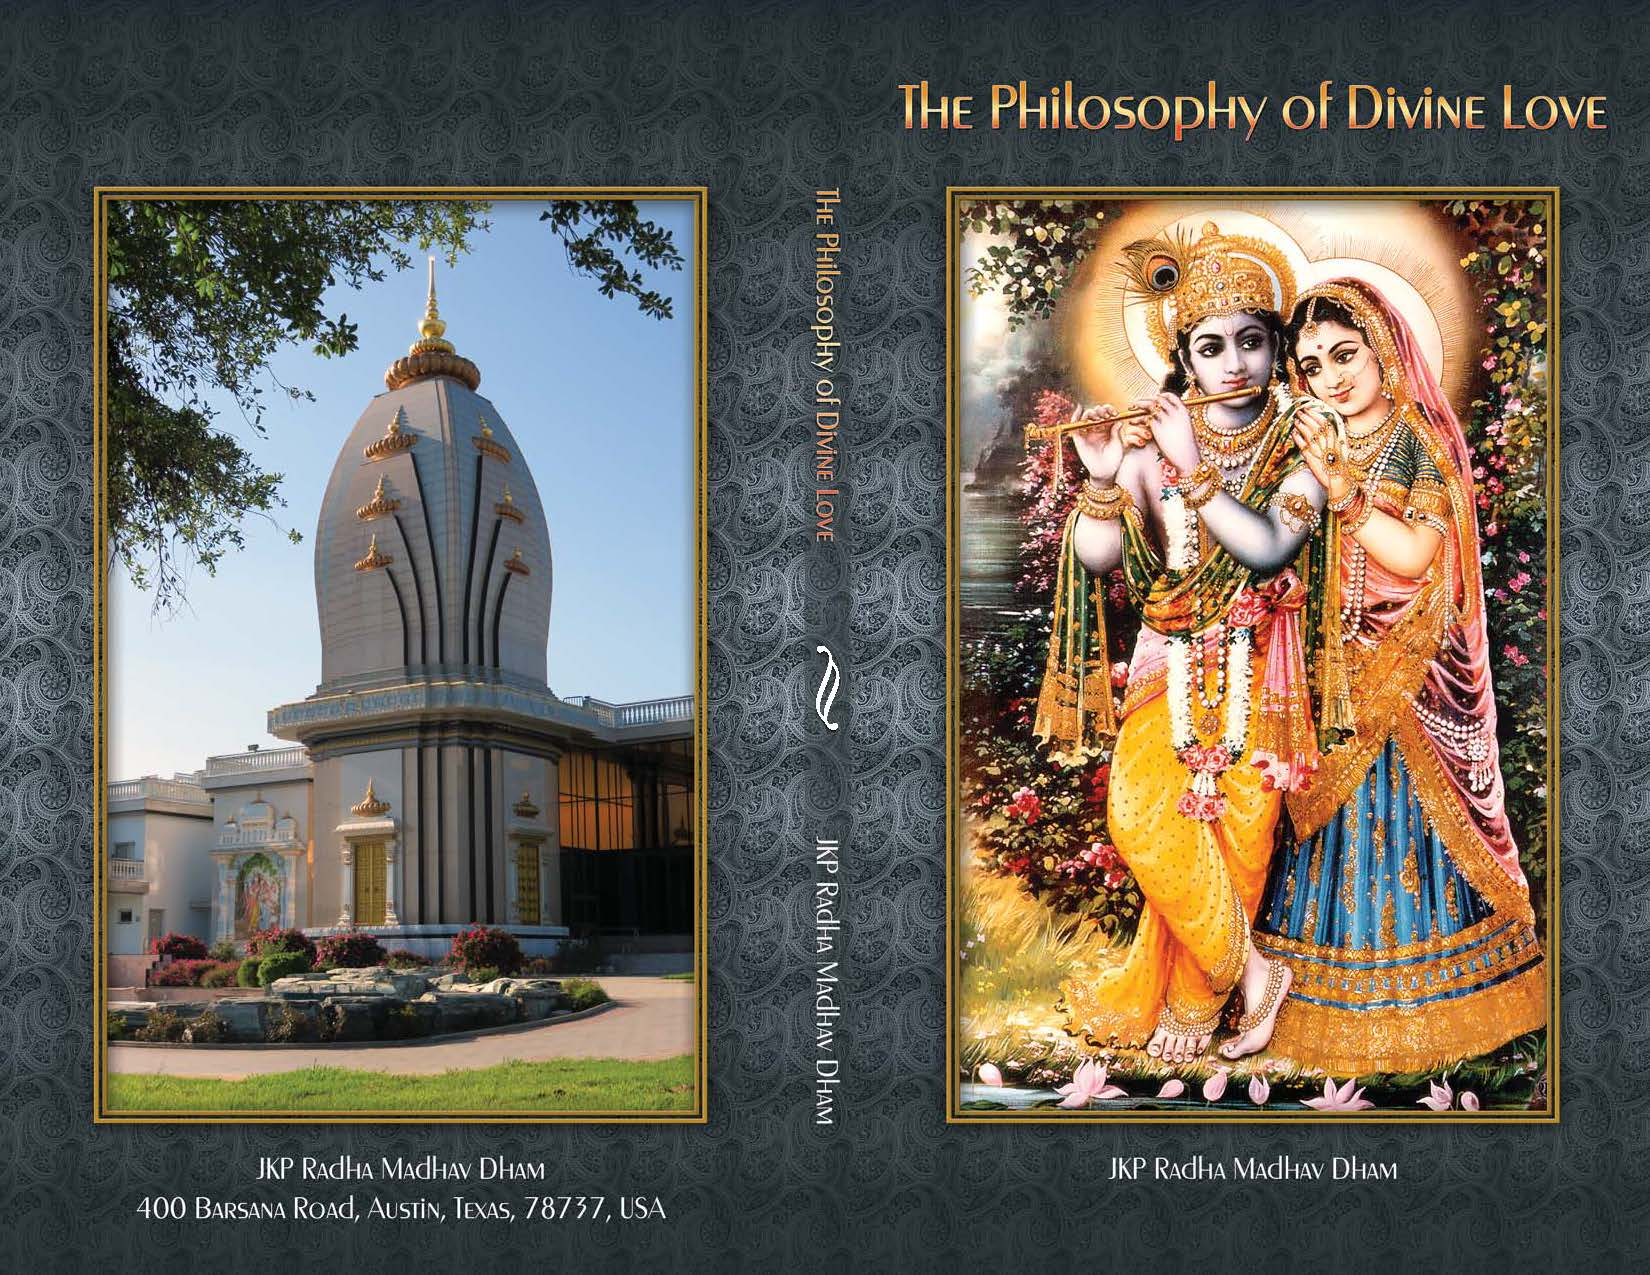 The Philosophy of Divine Love